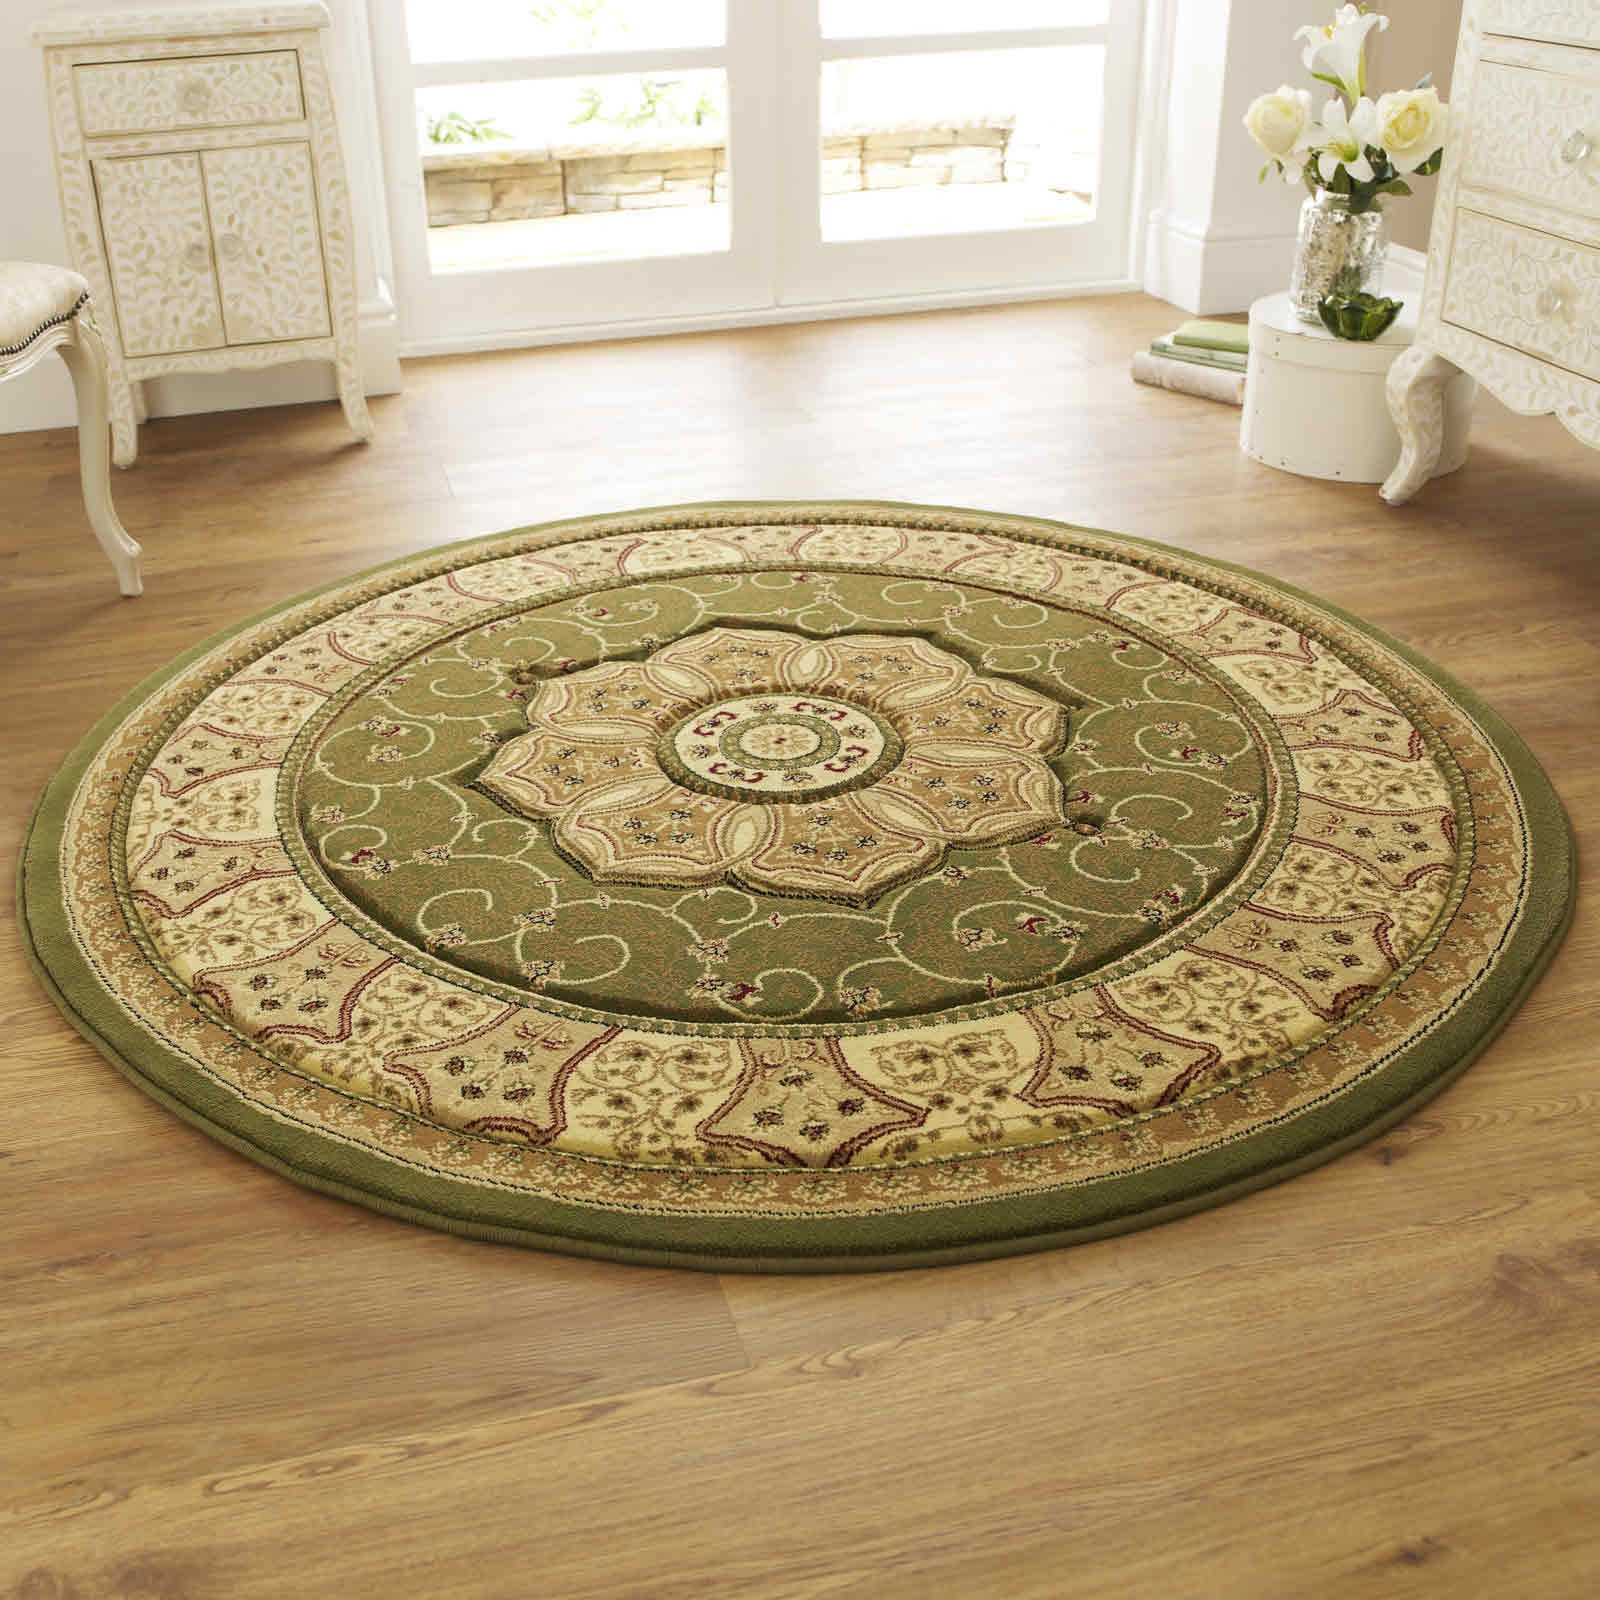 Green Circular Rug Roselawnlutheran With Circular Green Rugs (Image 7 of 15)